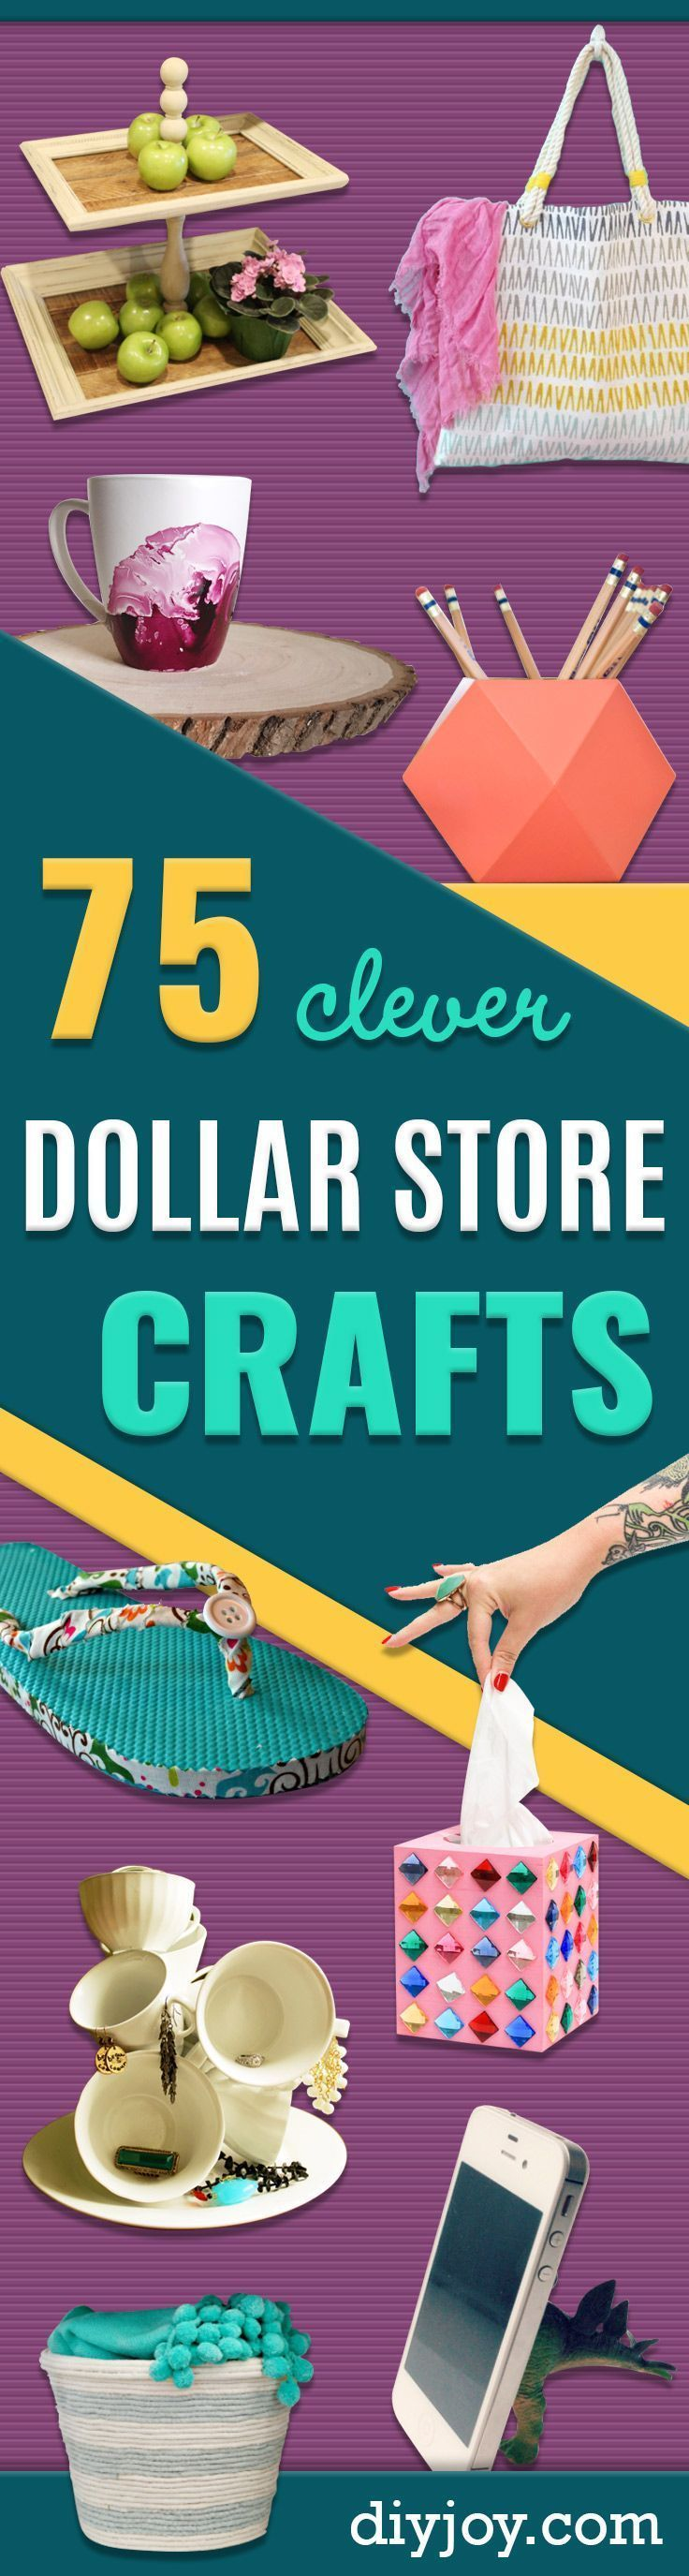 307 best diy images on pinterest bricolage craft ideas and dollar store crafts best cheap diy dollar store craft ideas for kids teen solutioingenieria Gallery